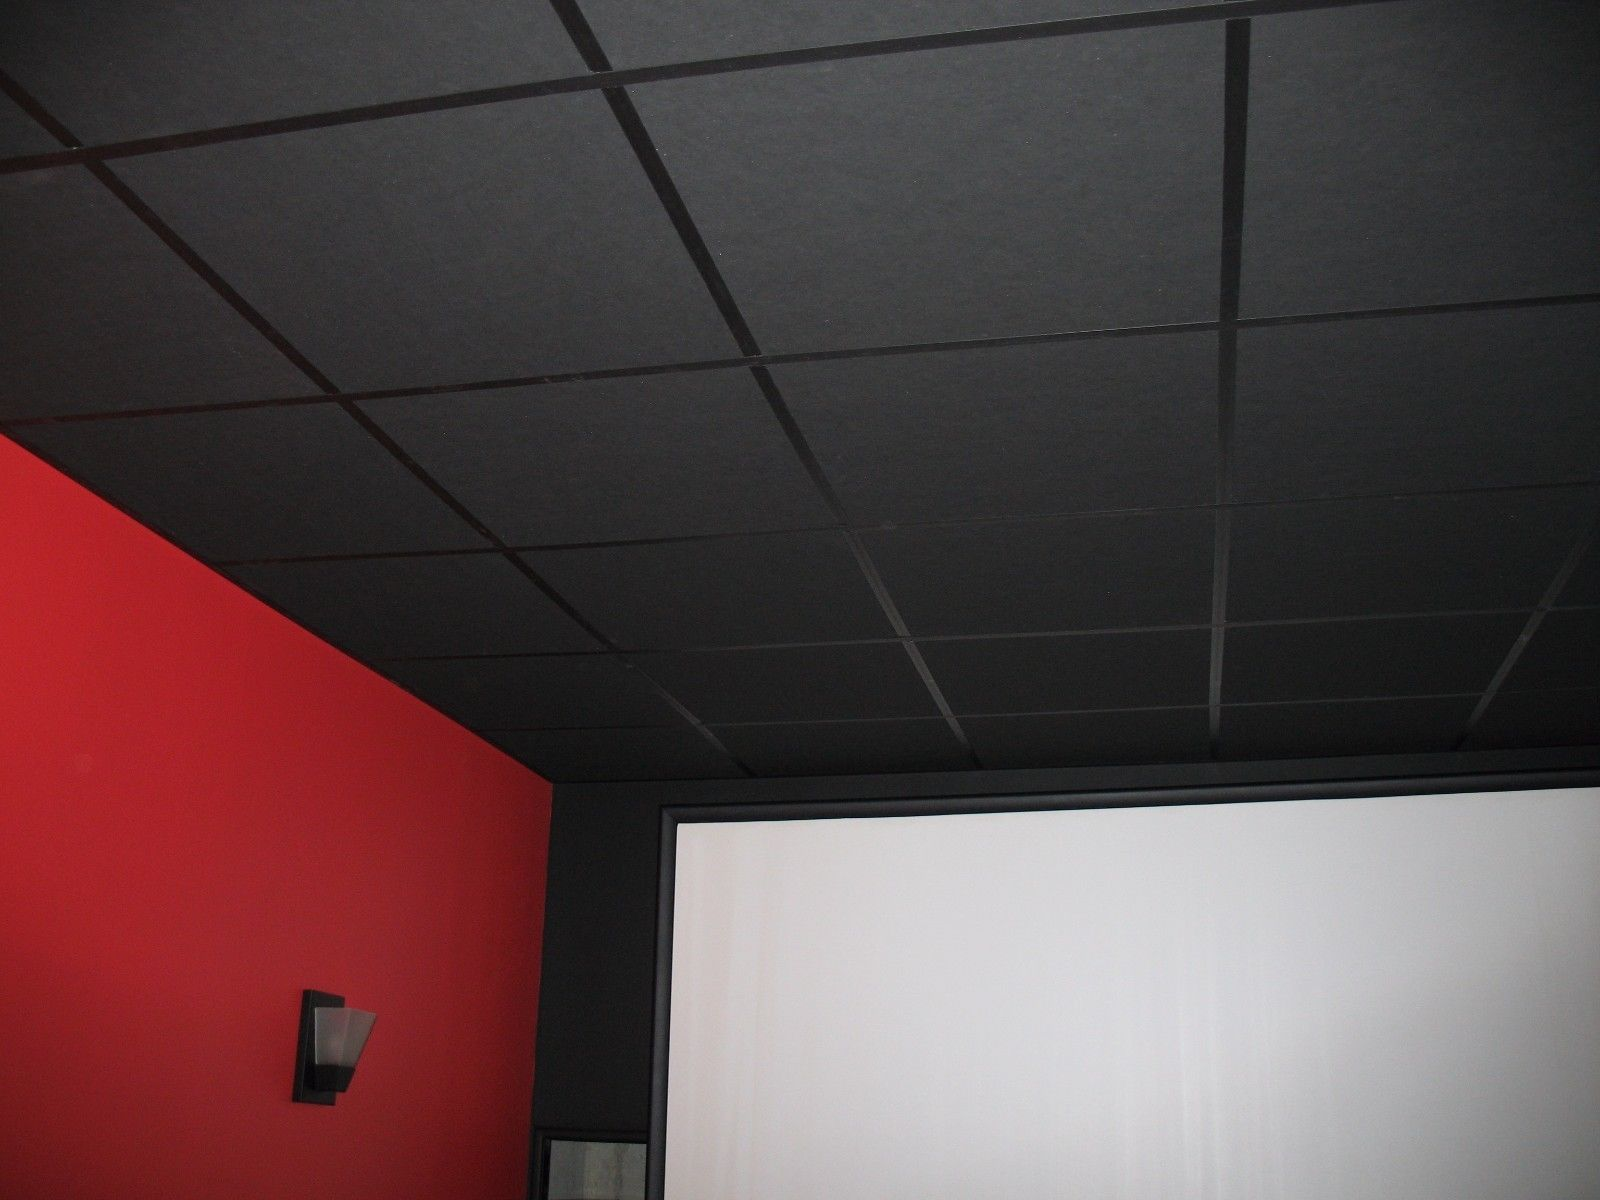 Black Acoustic Ceiling Tile By Armstrong Capitol City Lumber